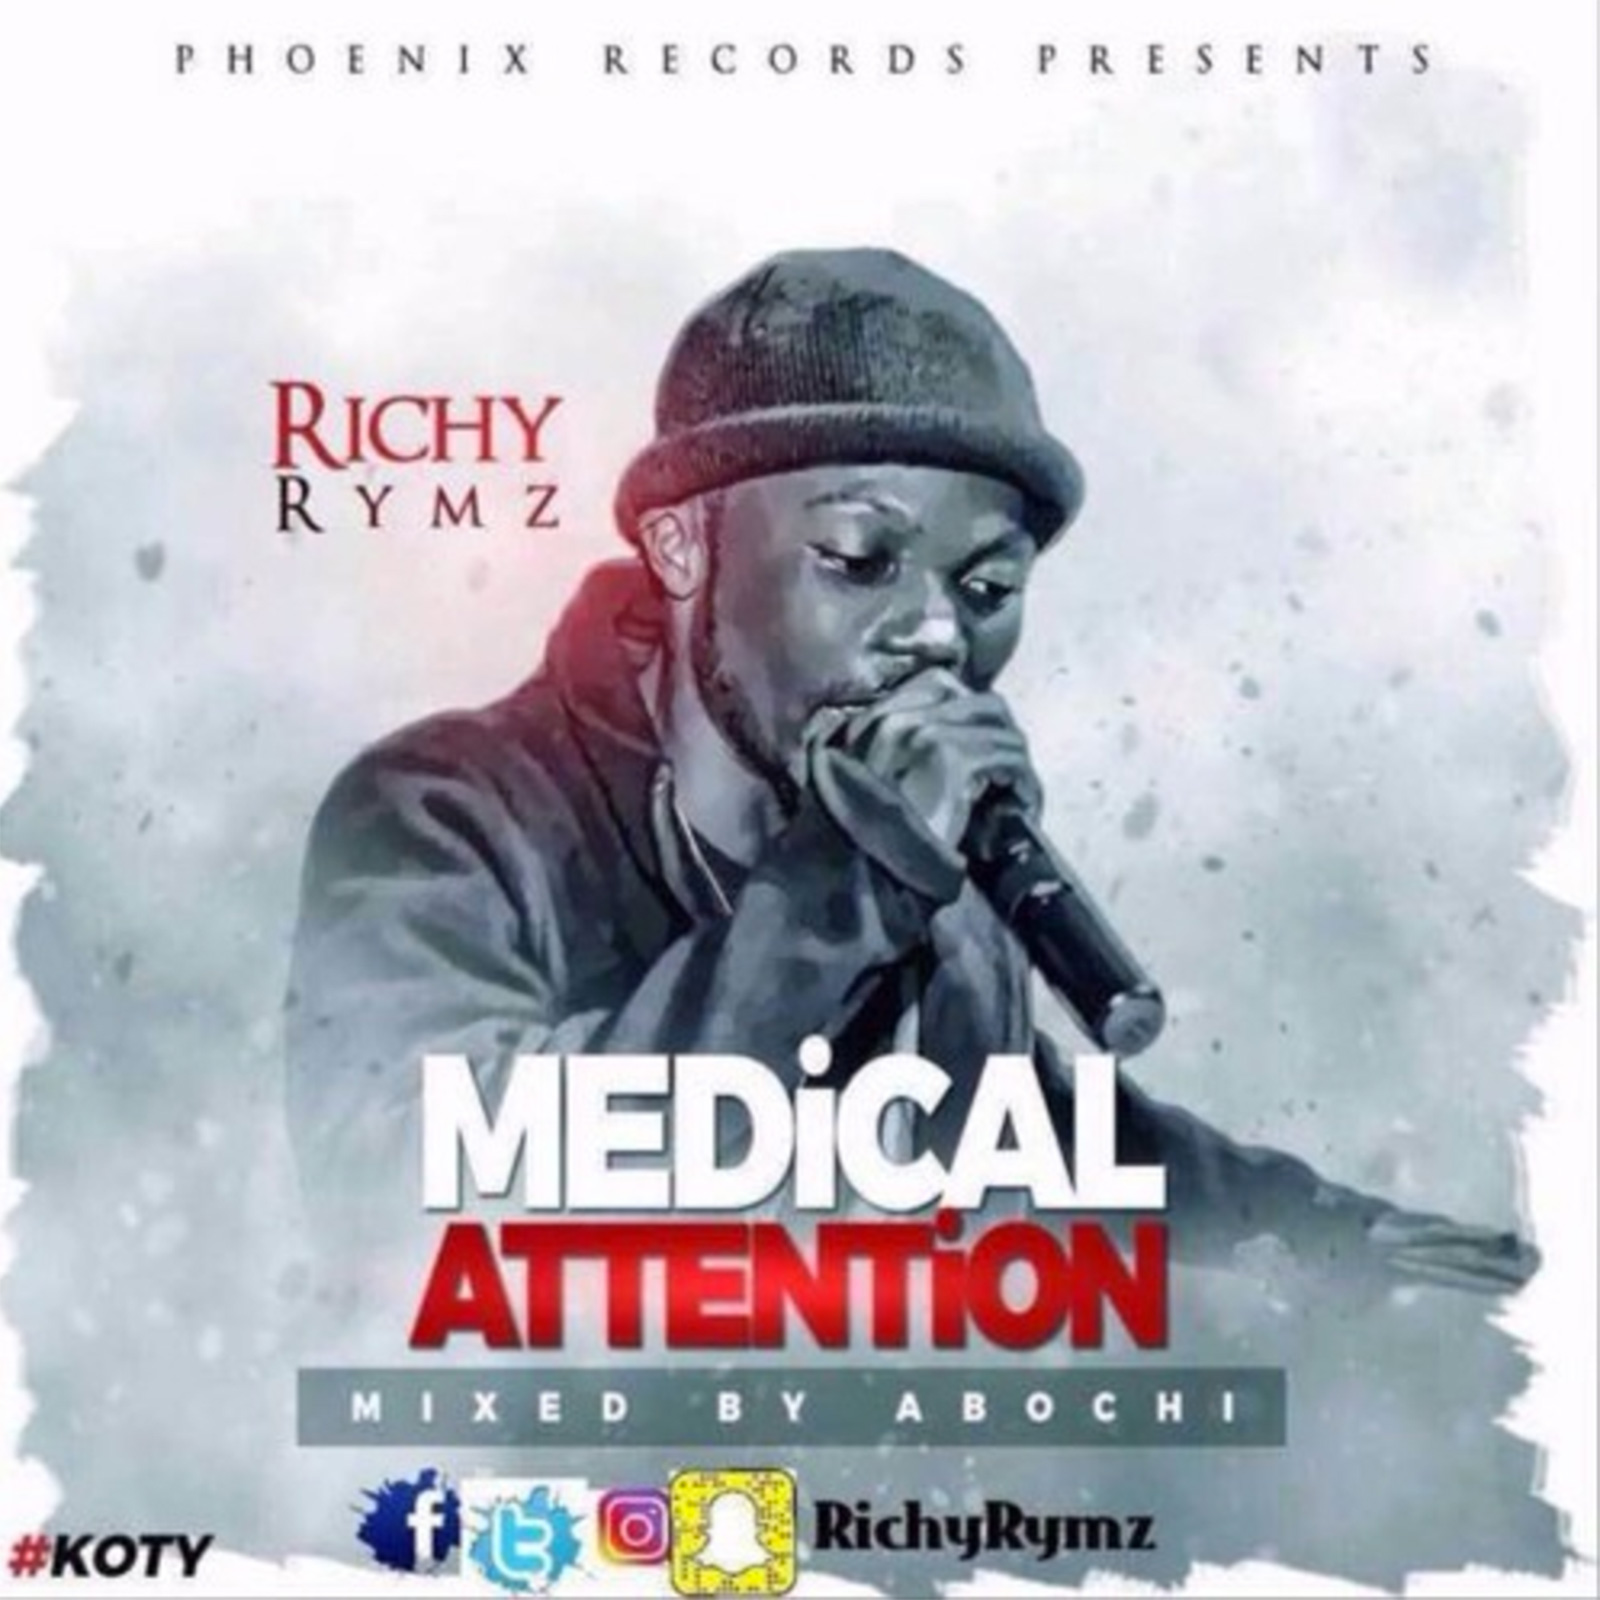 Medical Attention by Richy Rymz